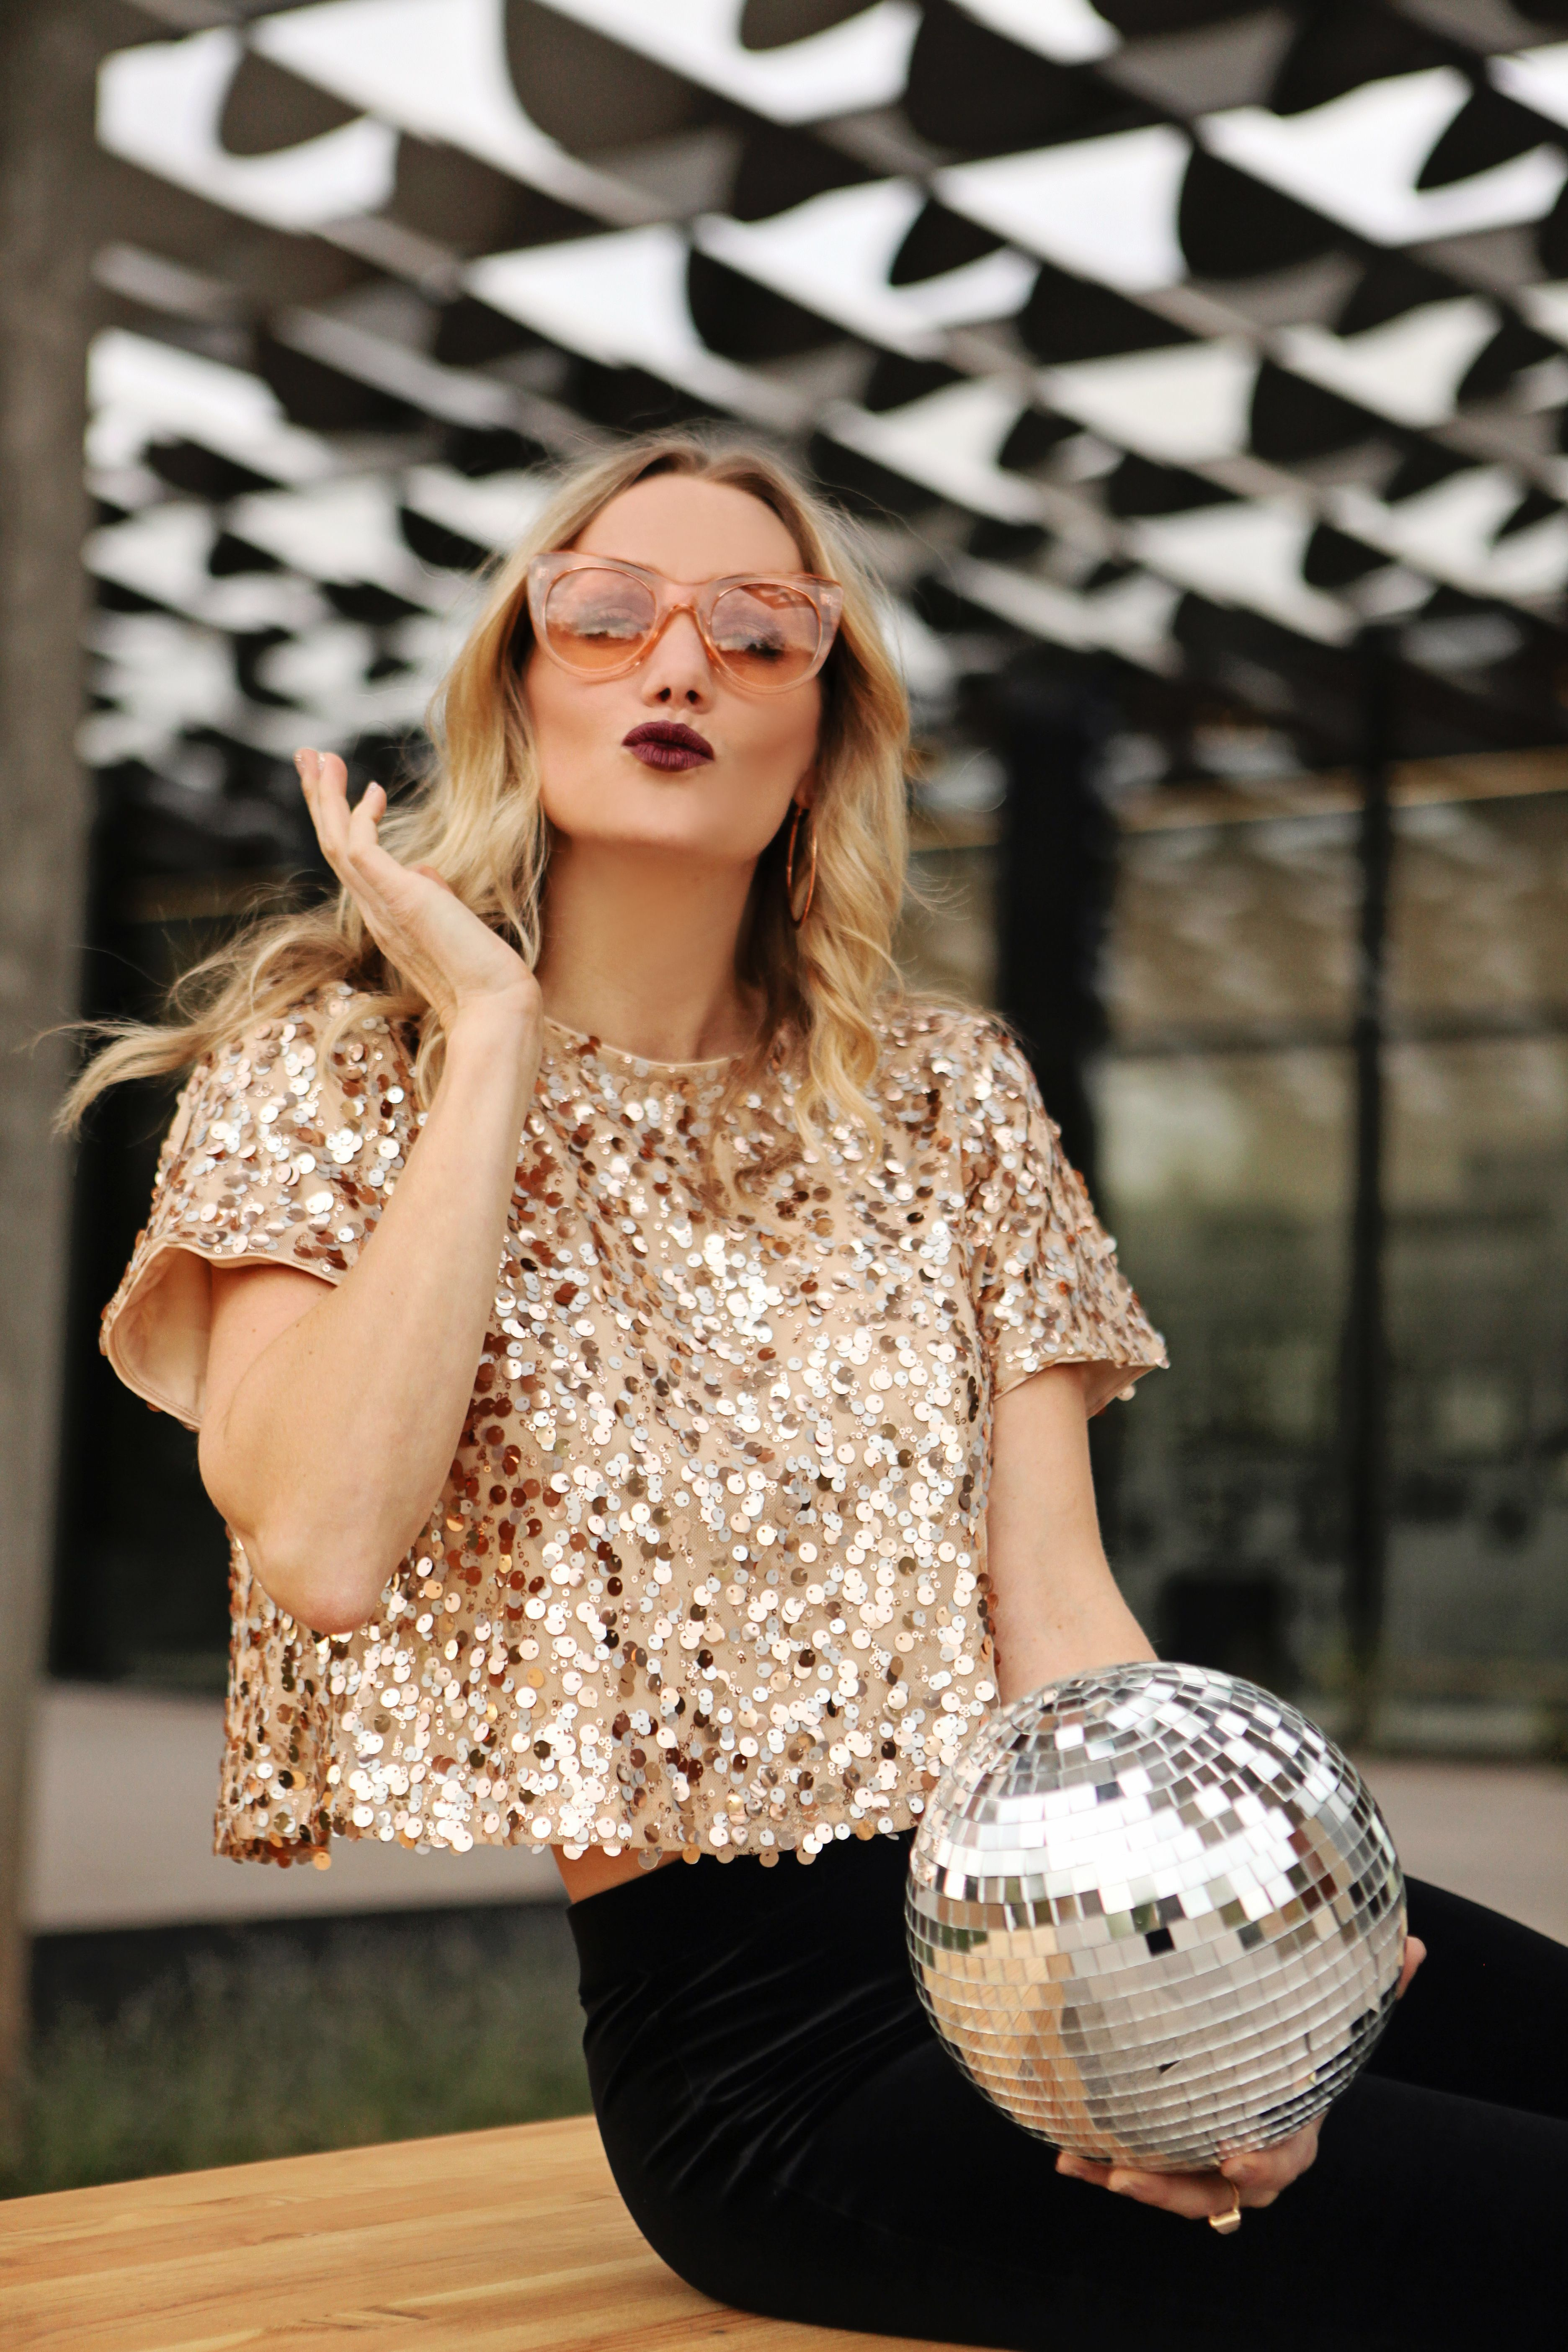 d2799a3797 Rose gold sequin crop top New Year s Eve outfit